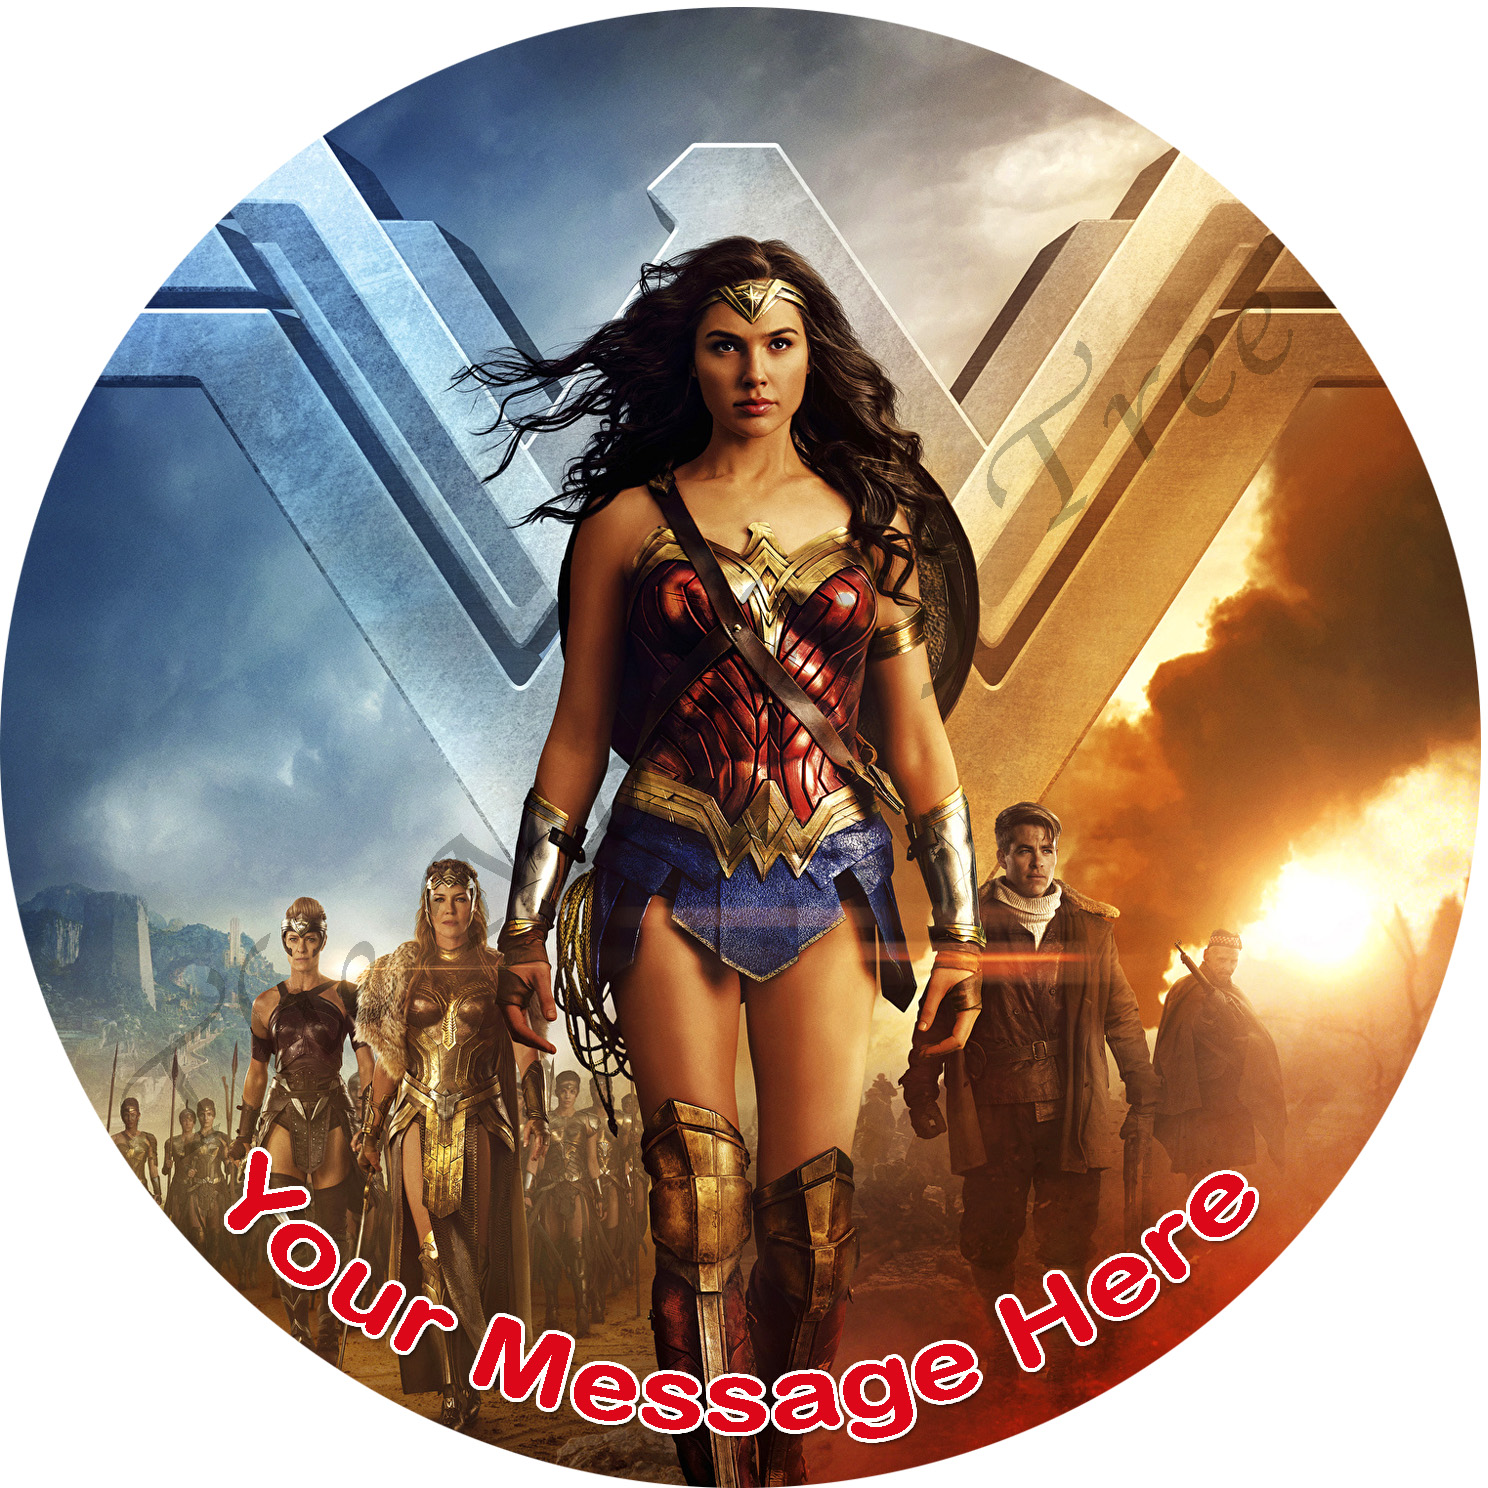 Wonder Woman justice league edible cake image topper birthday party cake fondant superhero